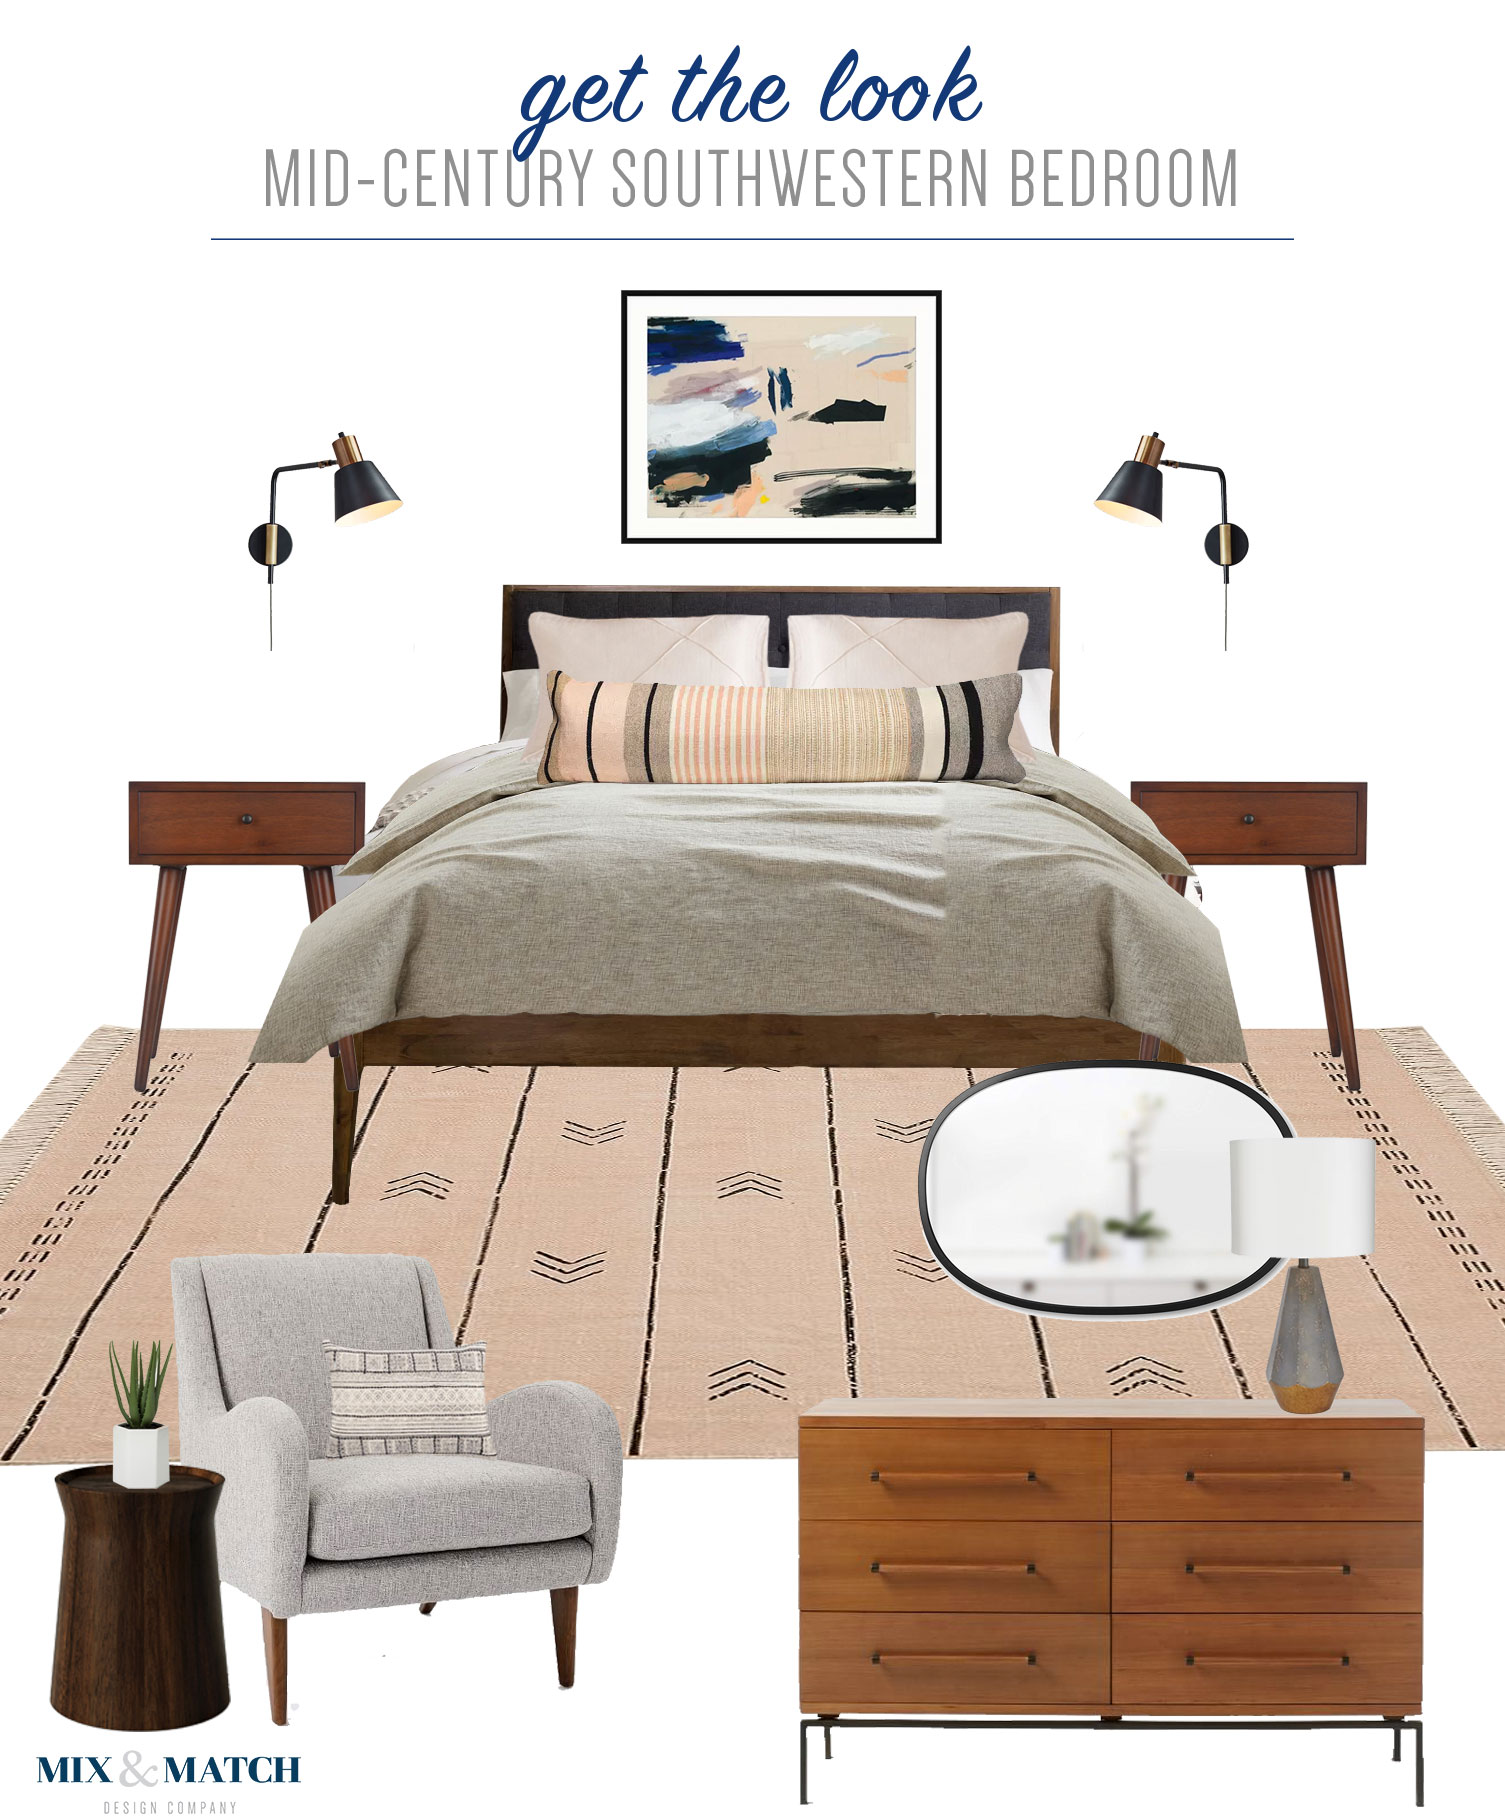 Get the look of this mid-century southwestern bedroom on the Mix & Match Blog